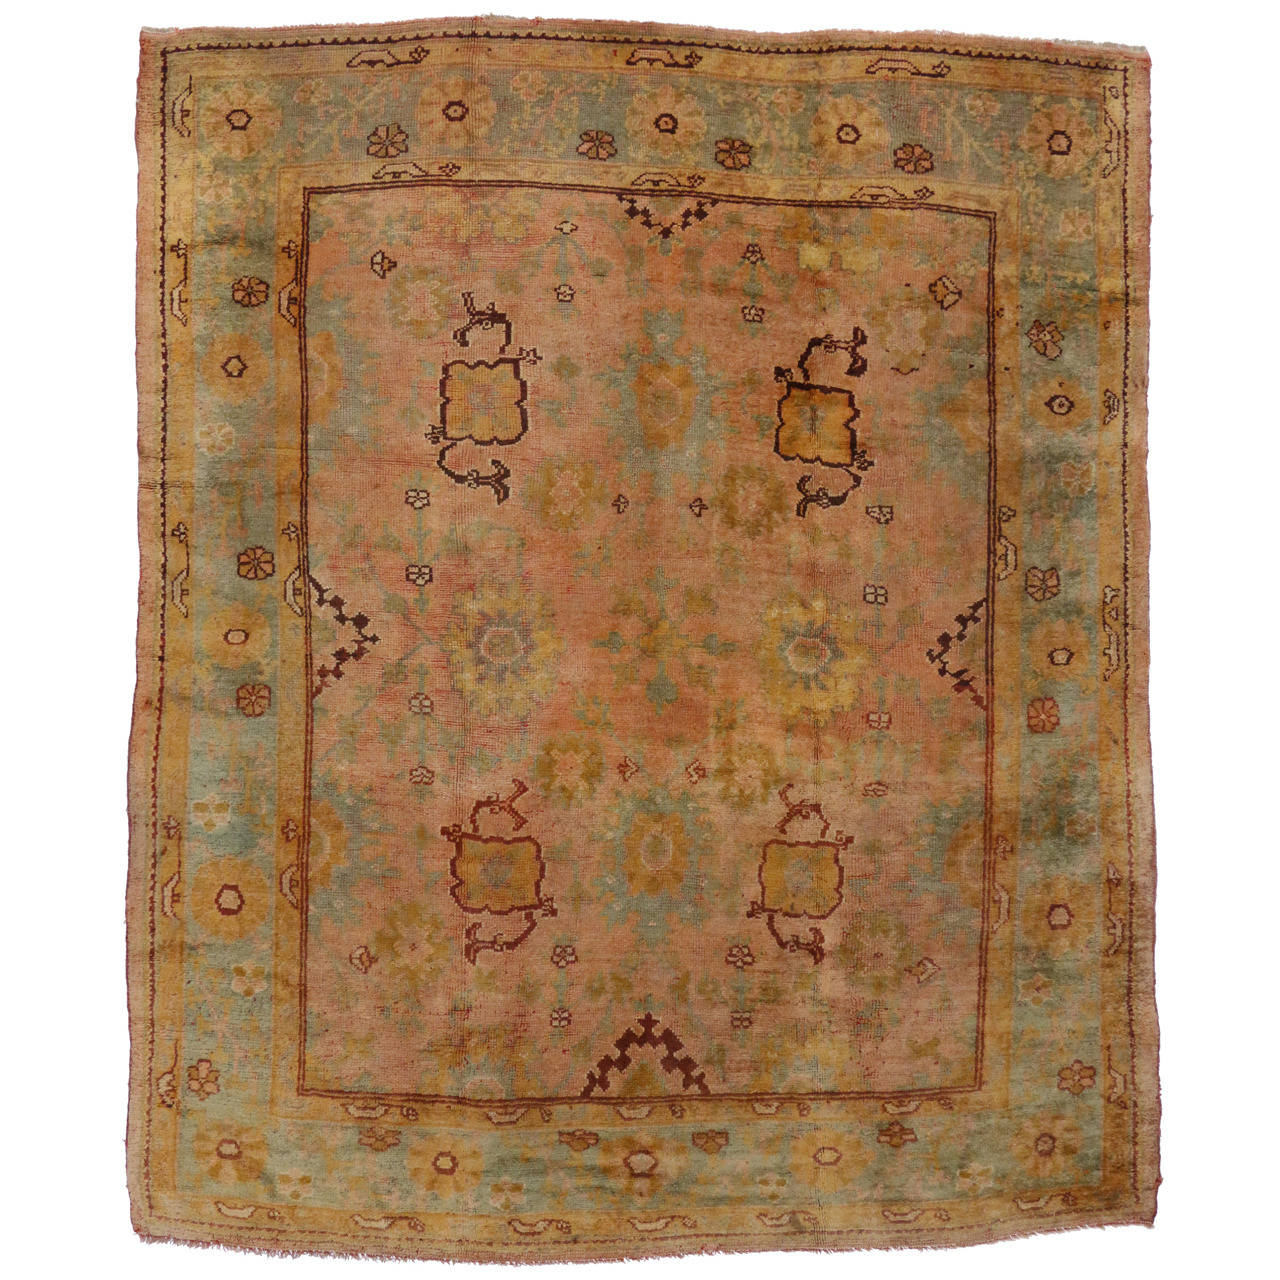 Antique turkish oushak area rug with modern style in time for Vintage style area rugs